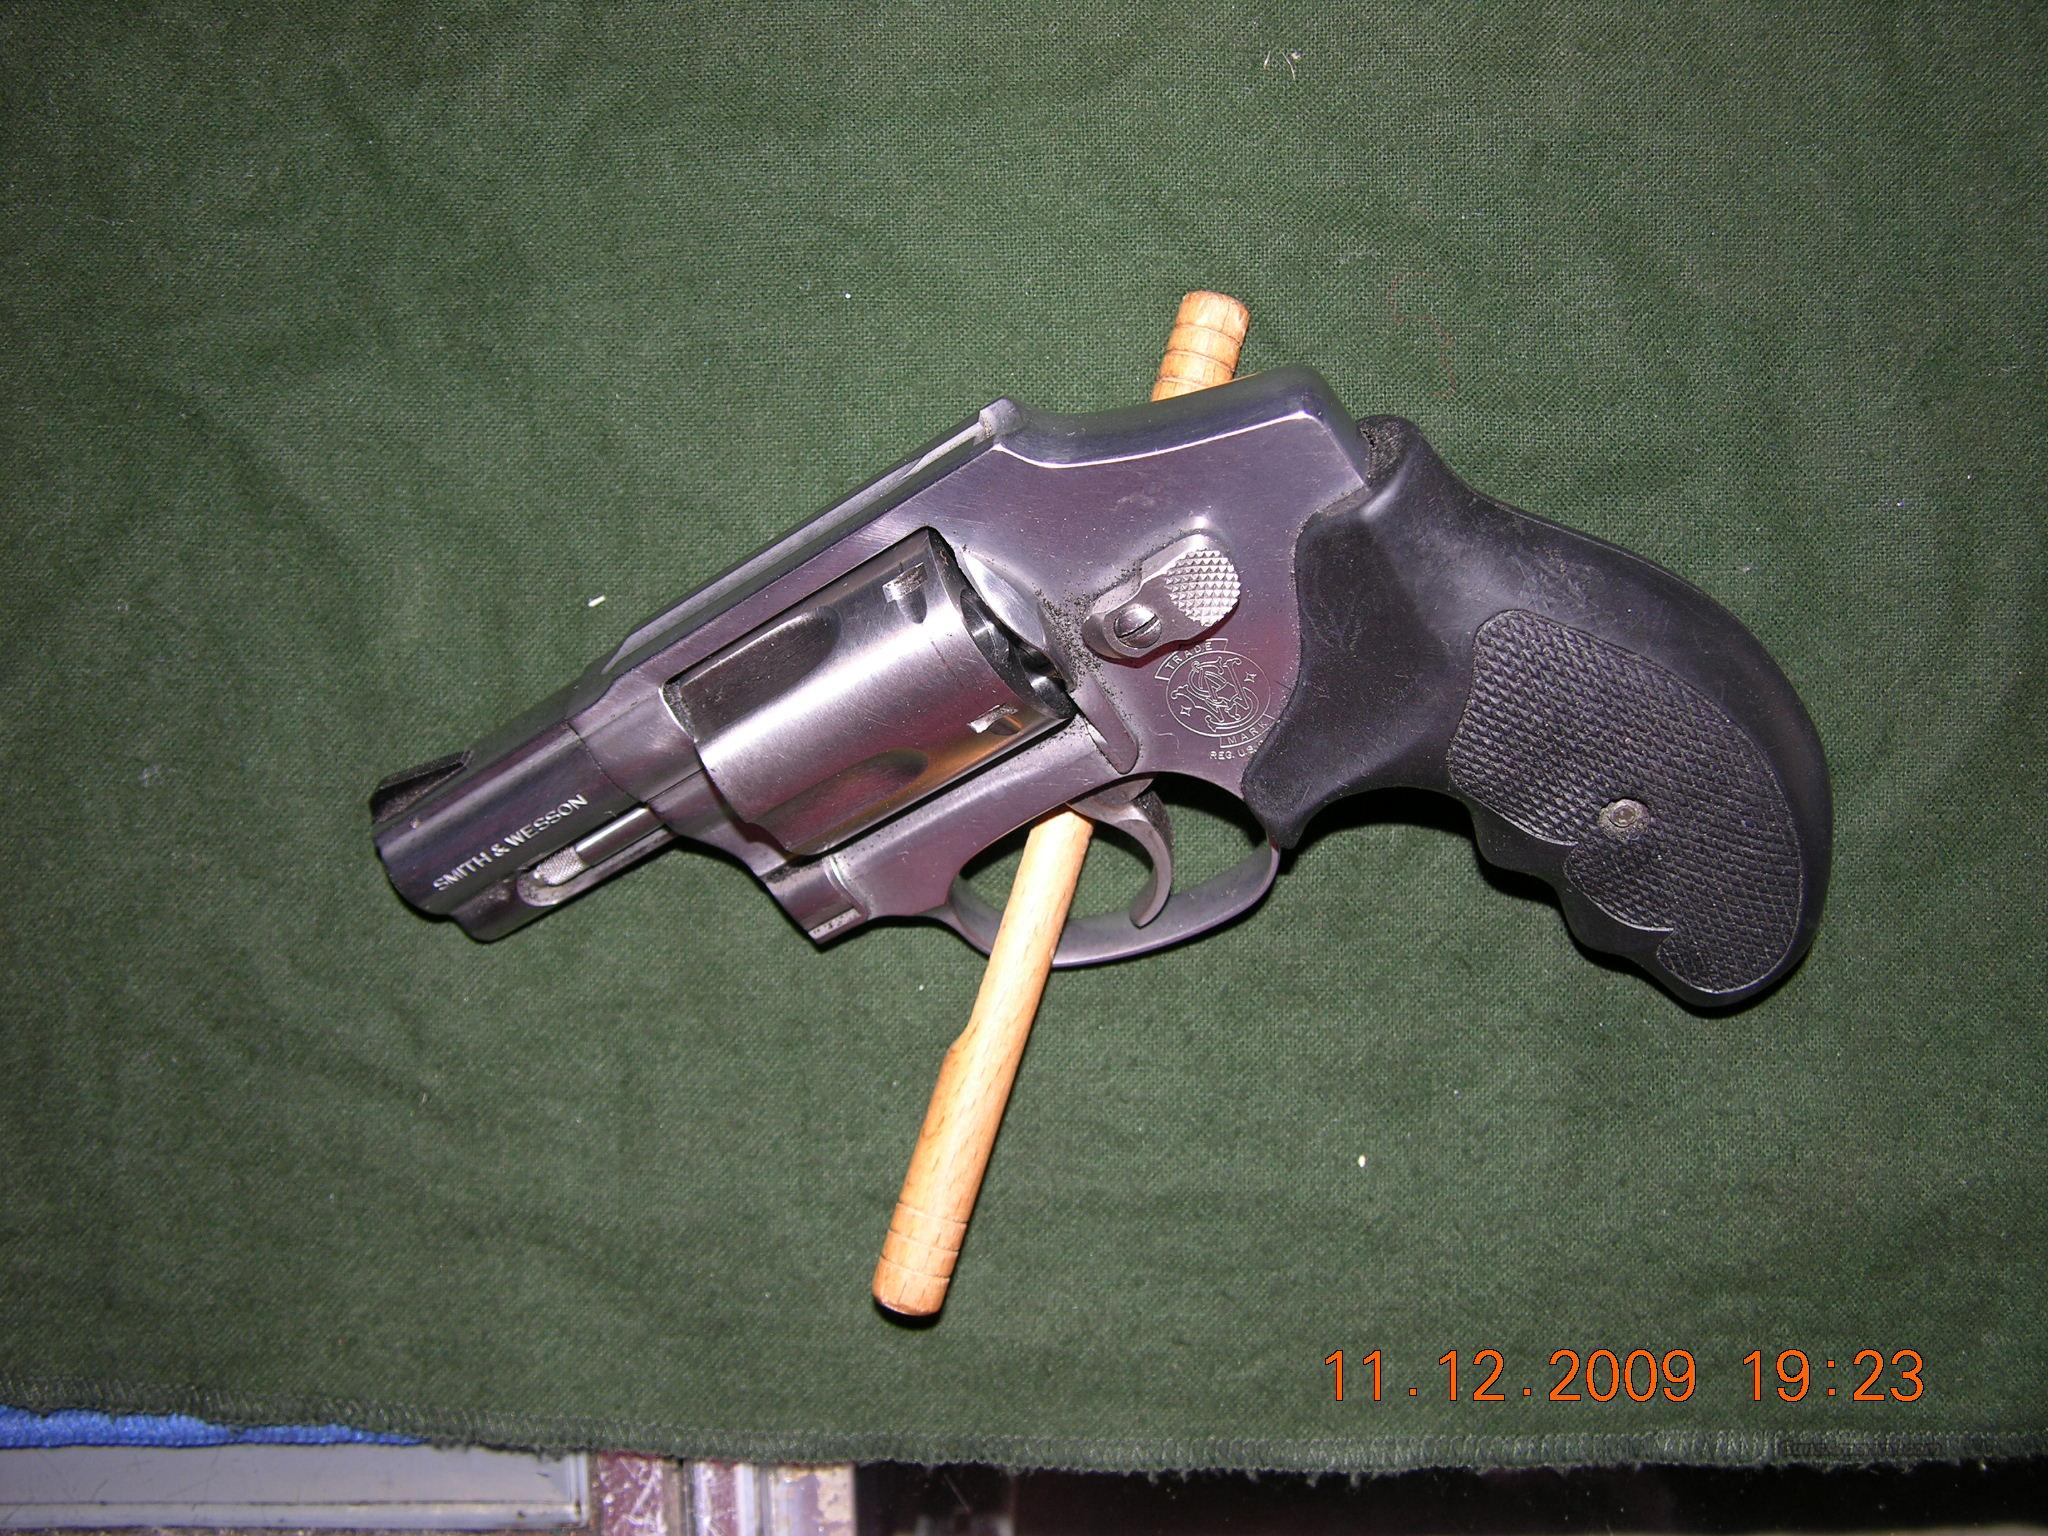 S&W Model 640 Stainless .357 Magnum 2 inch  Guns > Pistols > Smith & Wesson Revolvers > Full Frame Revolver